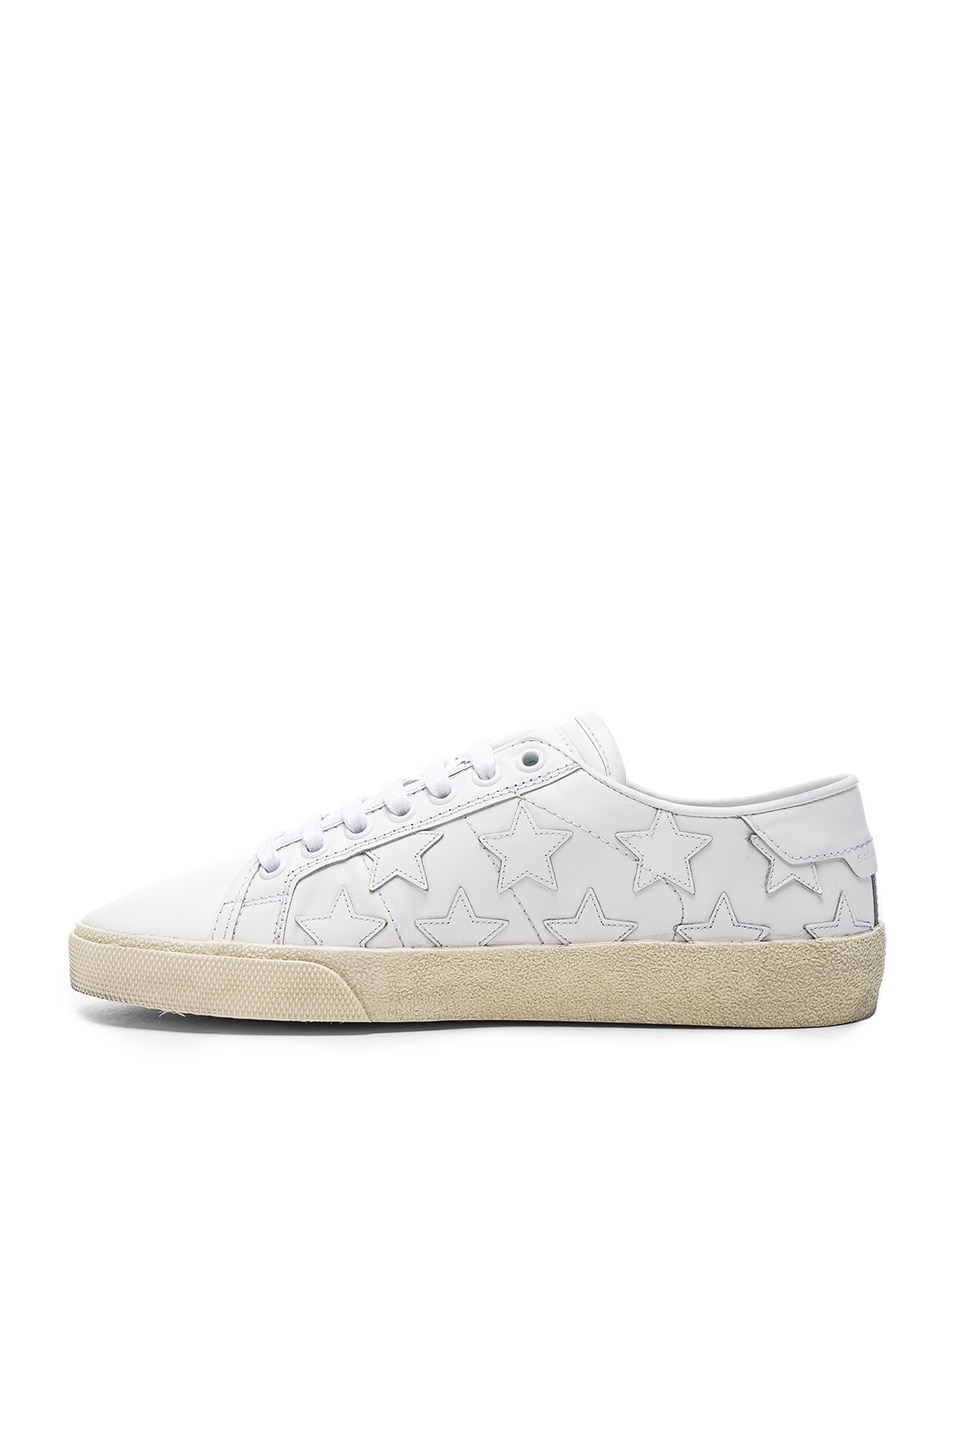 Image 5 of Saint Laurent Leather Court Classic Star Sneakers in Off White